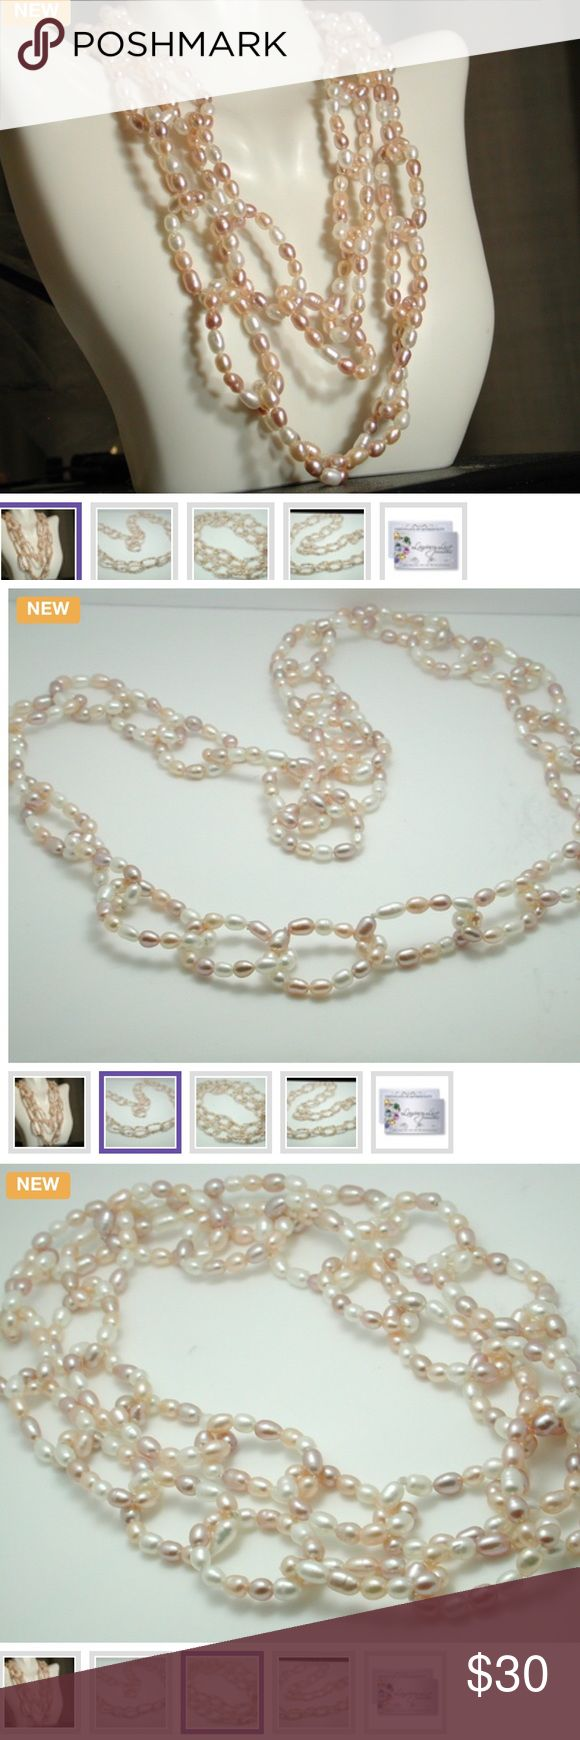 """Freshwater Pearls 34"""" Lucien Piccard Necklace This beautiful necklace contains Cultured Cream Freshwater Pearls. The weight of this necklace is 64.9 grams. The necklace measures 35"""" long. Don't Miss Out !!! Lucien Piccard Jewelry Necklaces"""